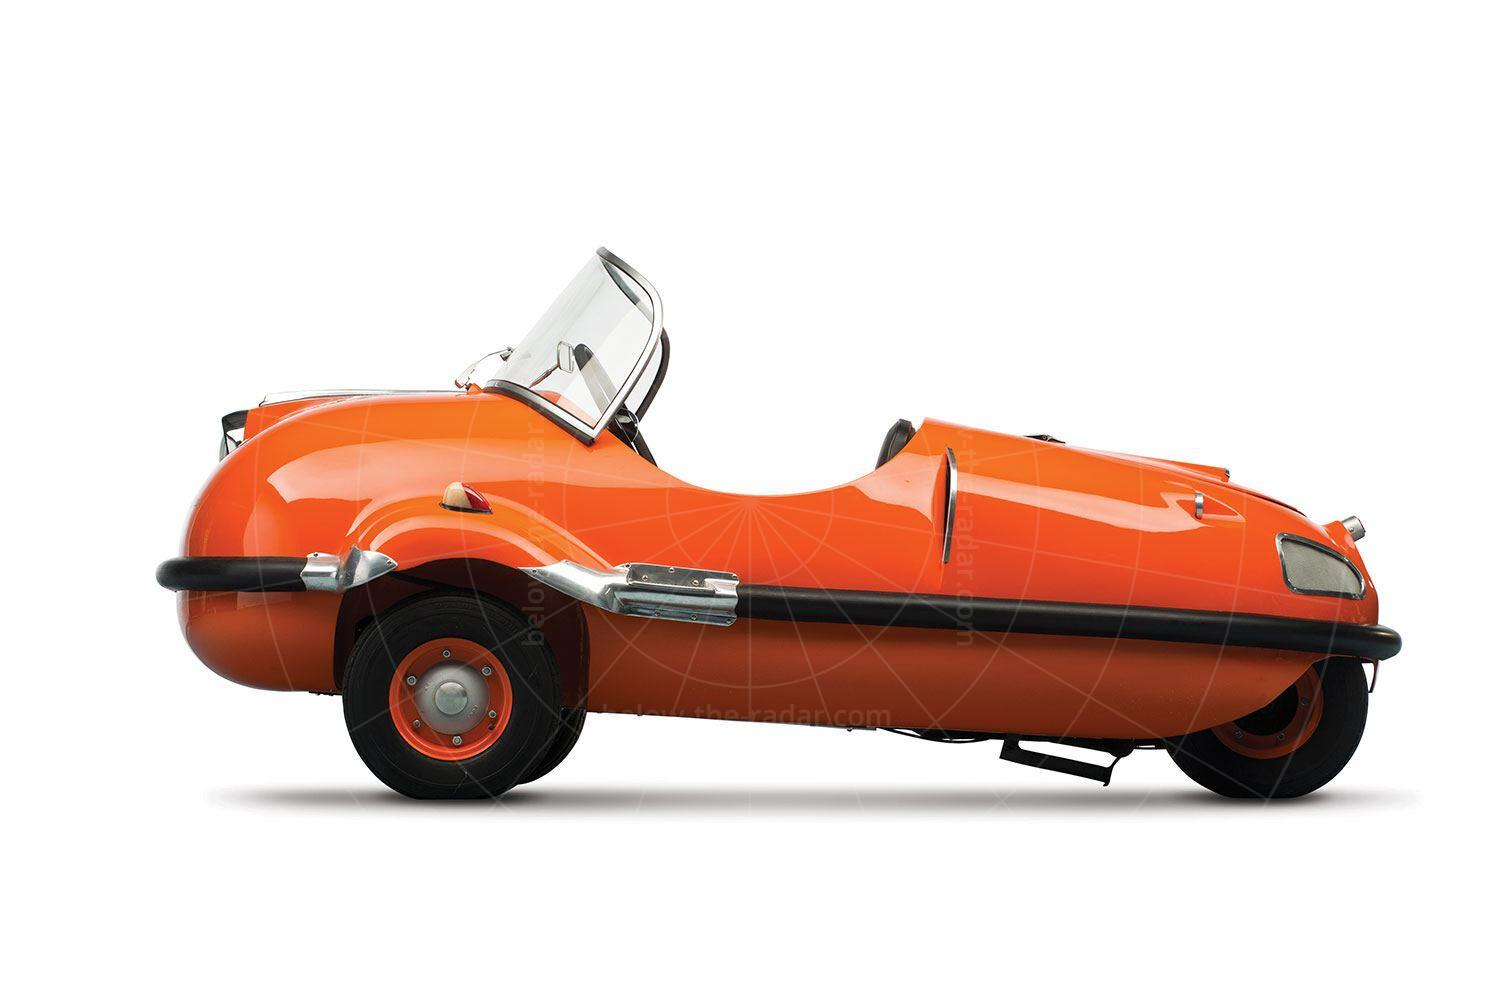 Avolette Record Deluxe Pic: RM Sotheby's | Avolette Record Deluxe